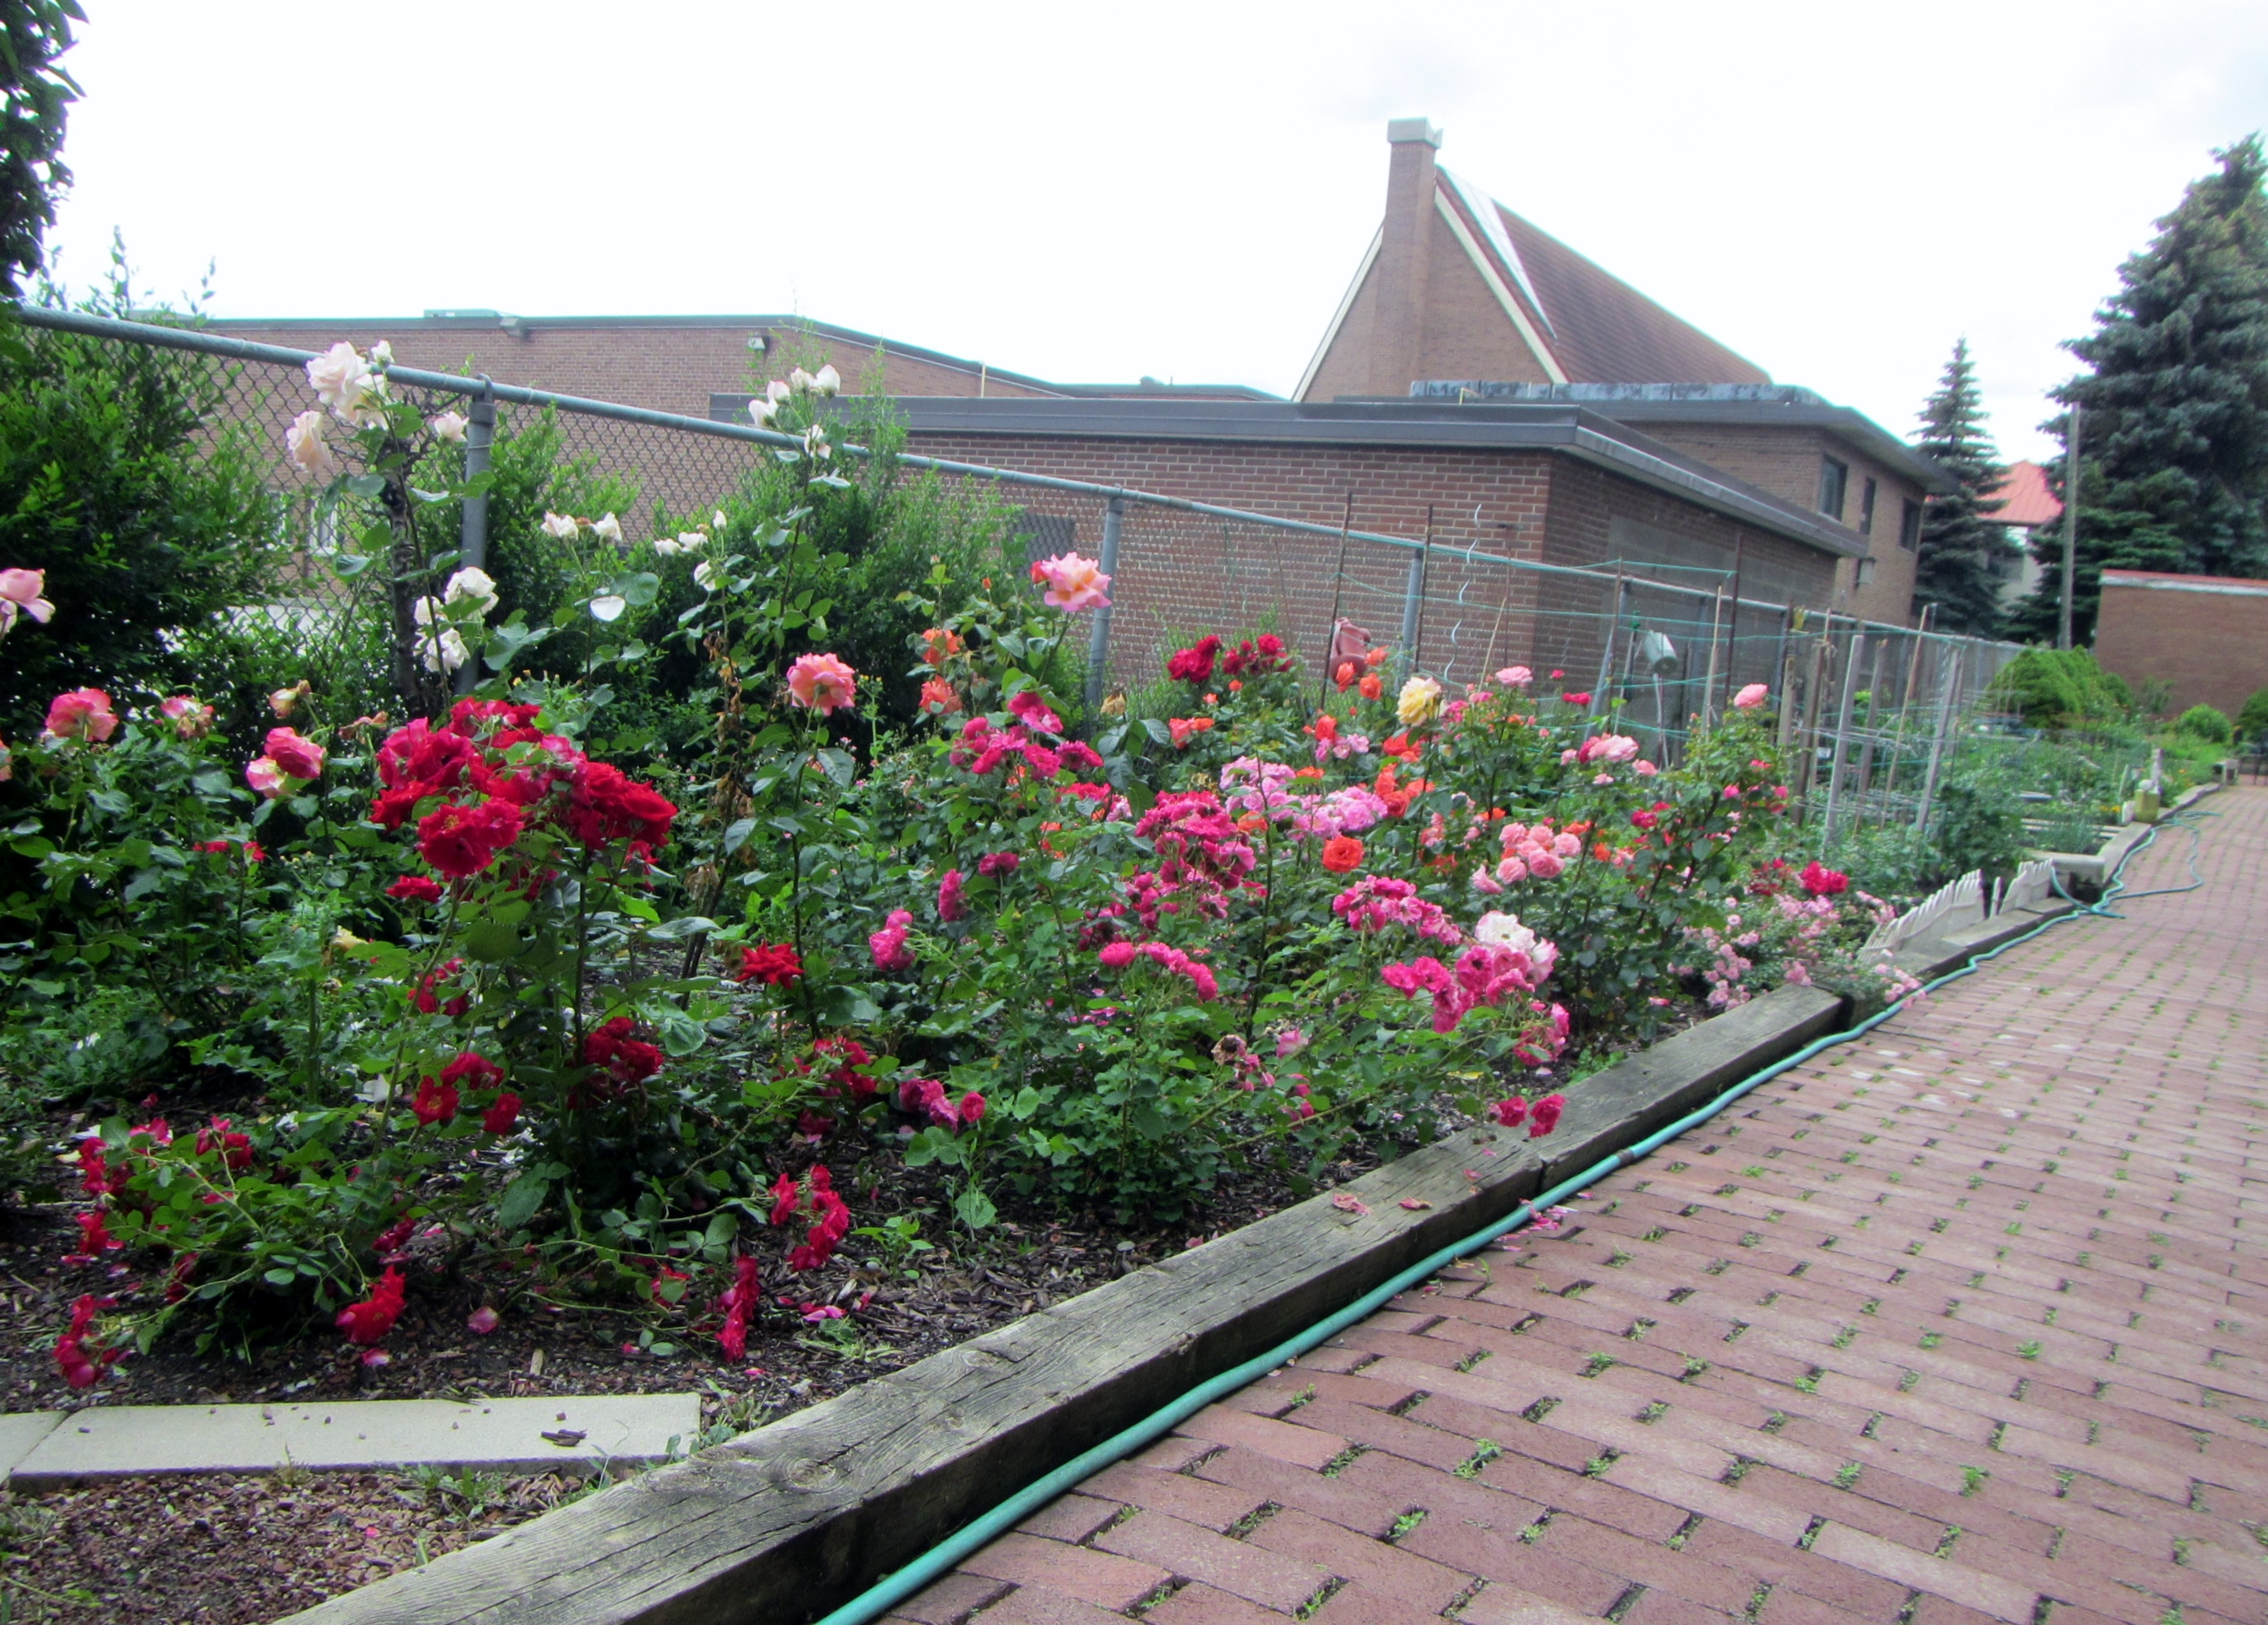 Rose garden and community farm